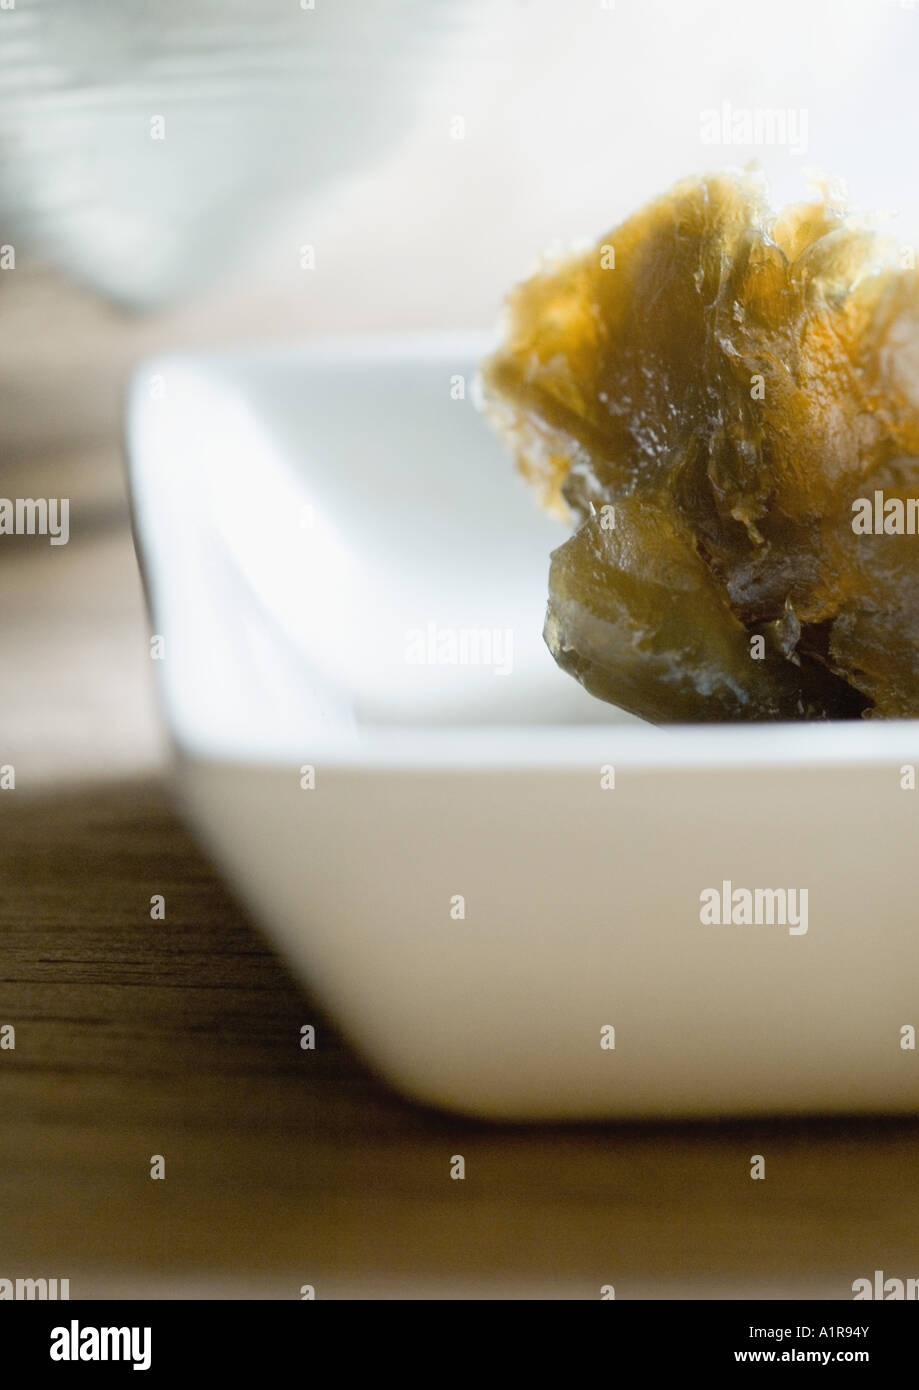 Seaweed in square dish, partial view - Stock Image